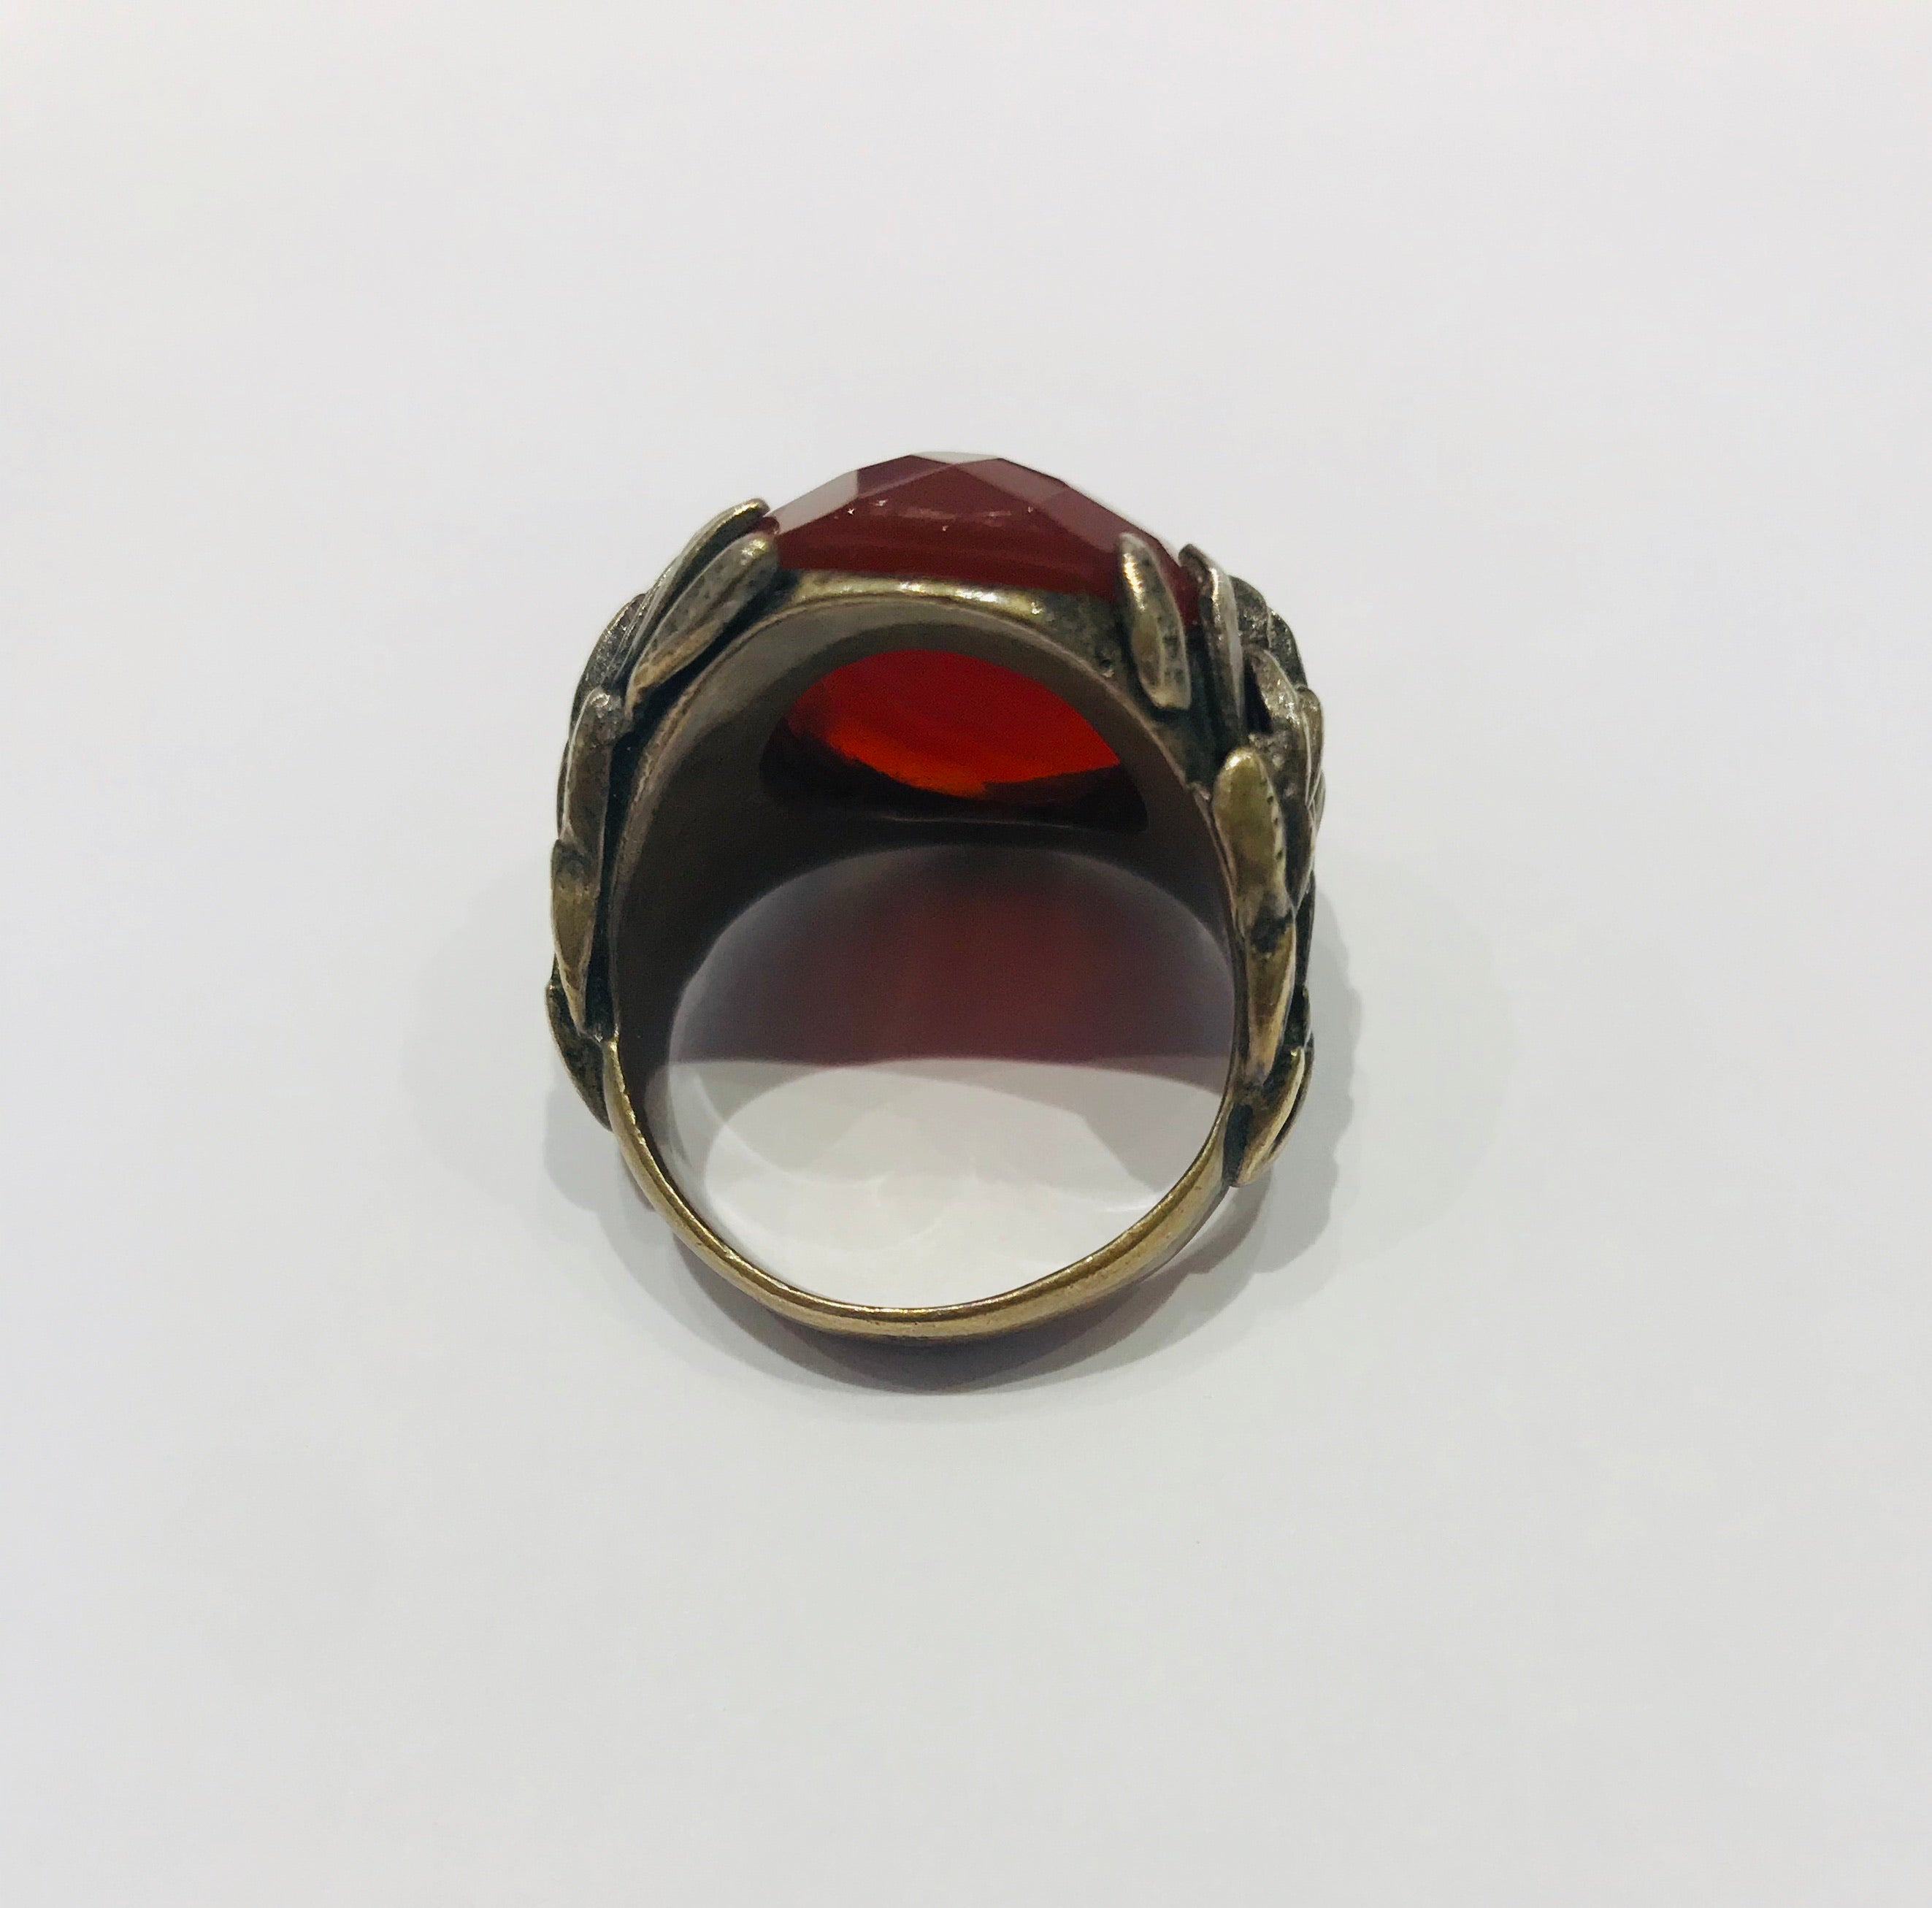 Wouters & Hendrix ring with faceted agate stone